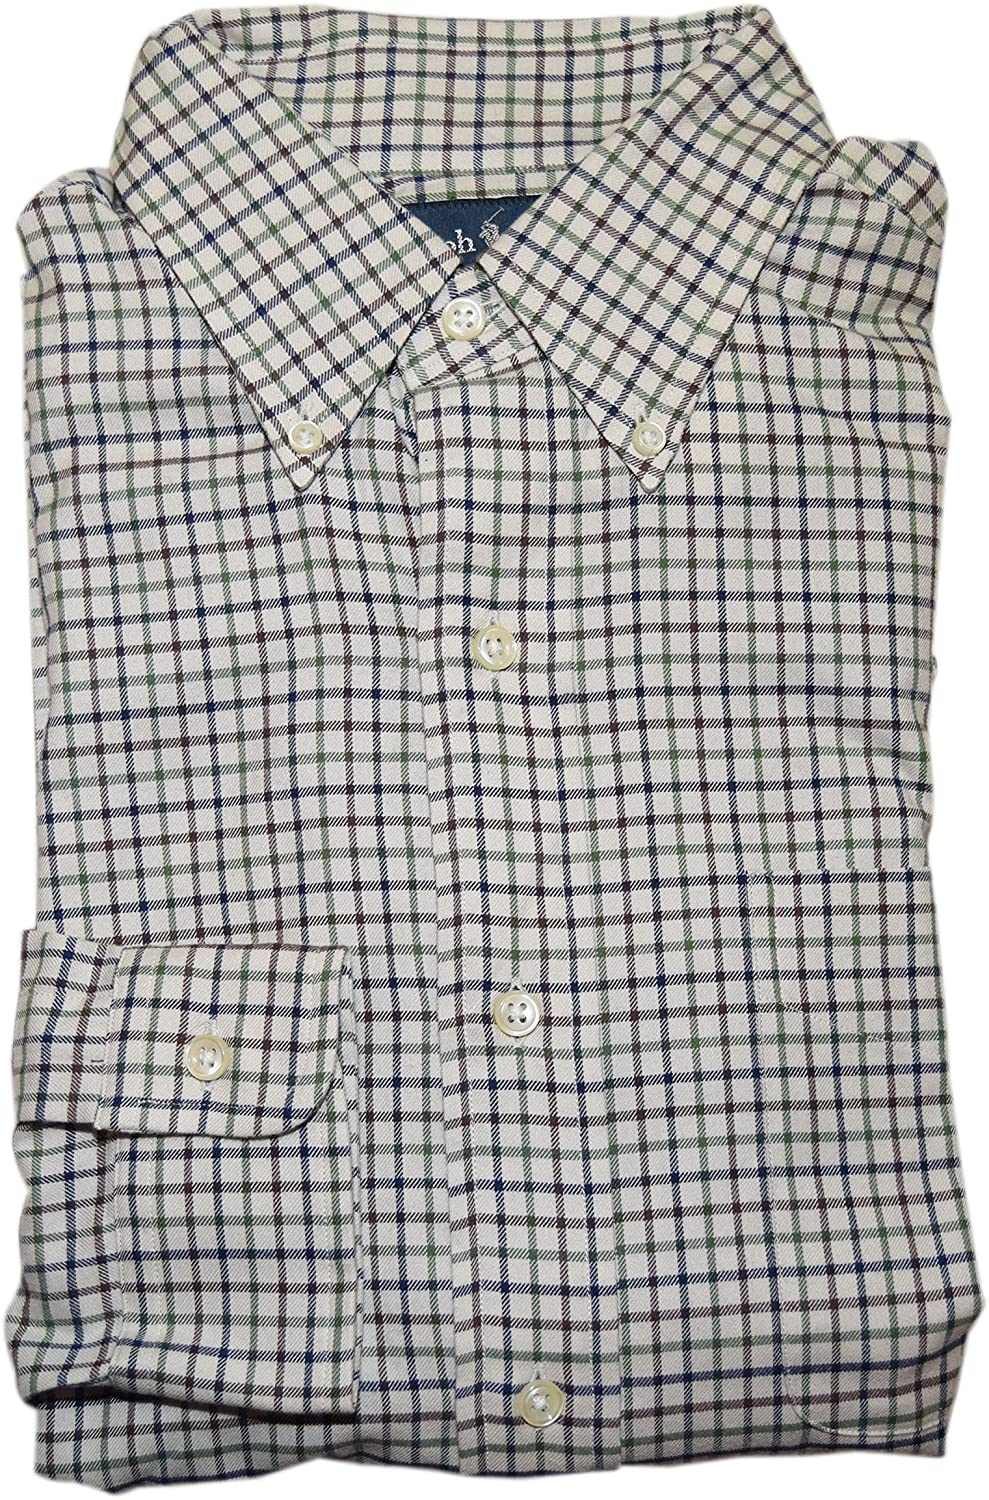 Wofupowga Mens Fashion Button Down Plaid Top Cotton Long-Sleeve Shirts